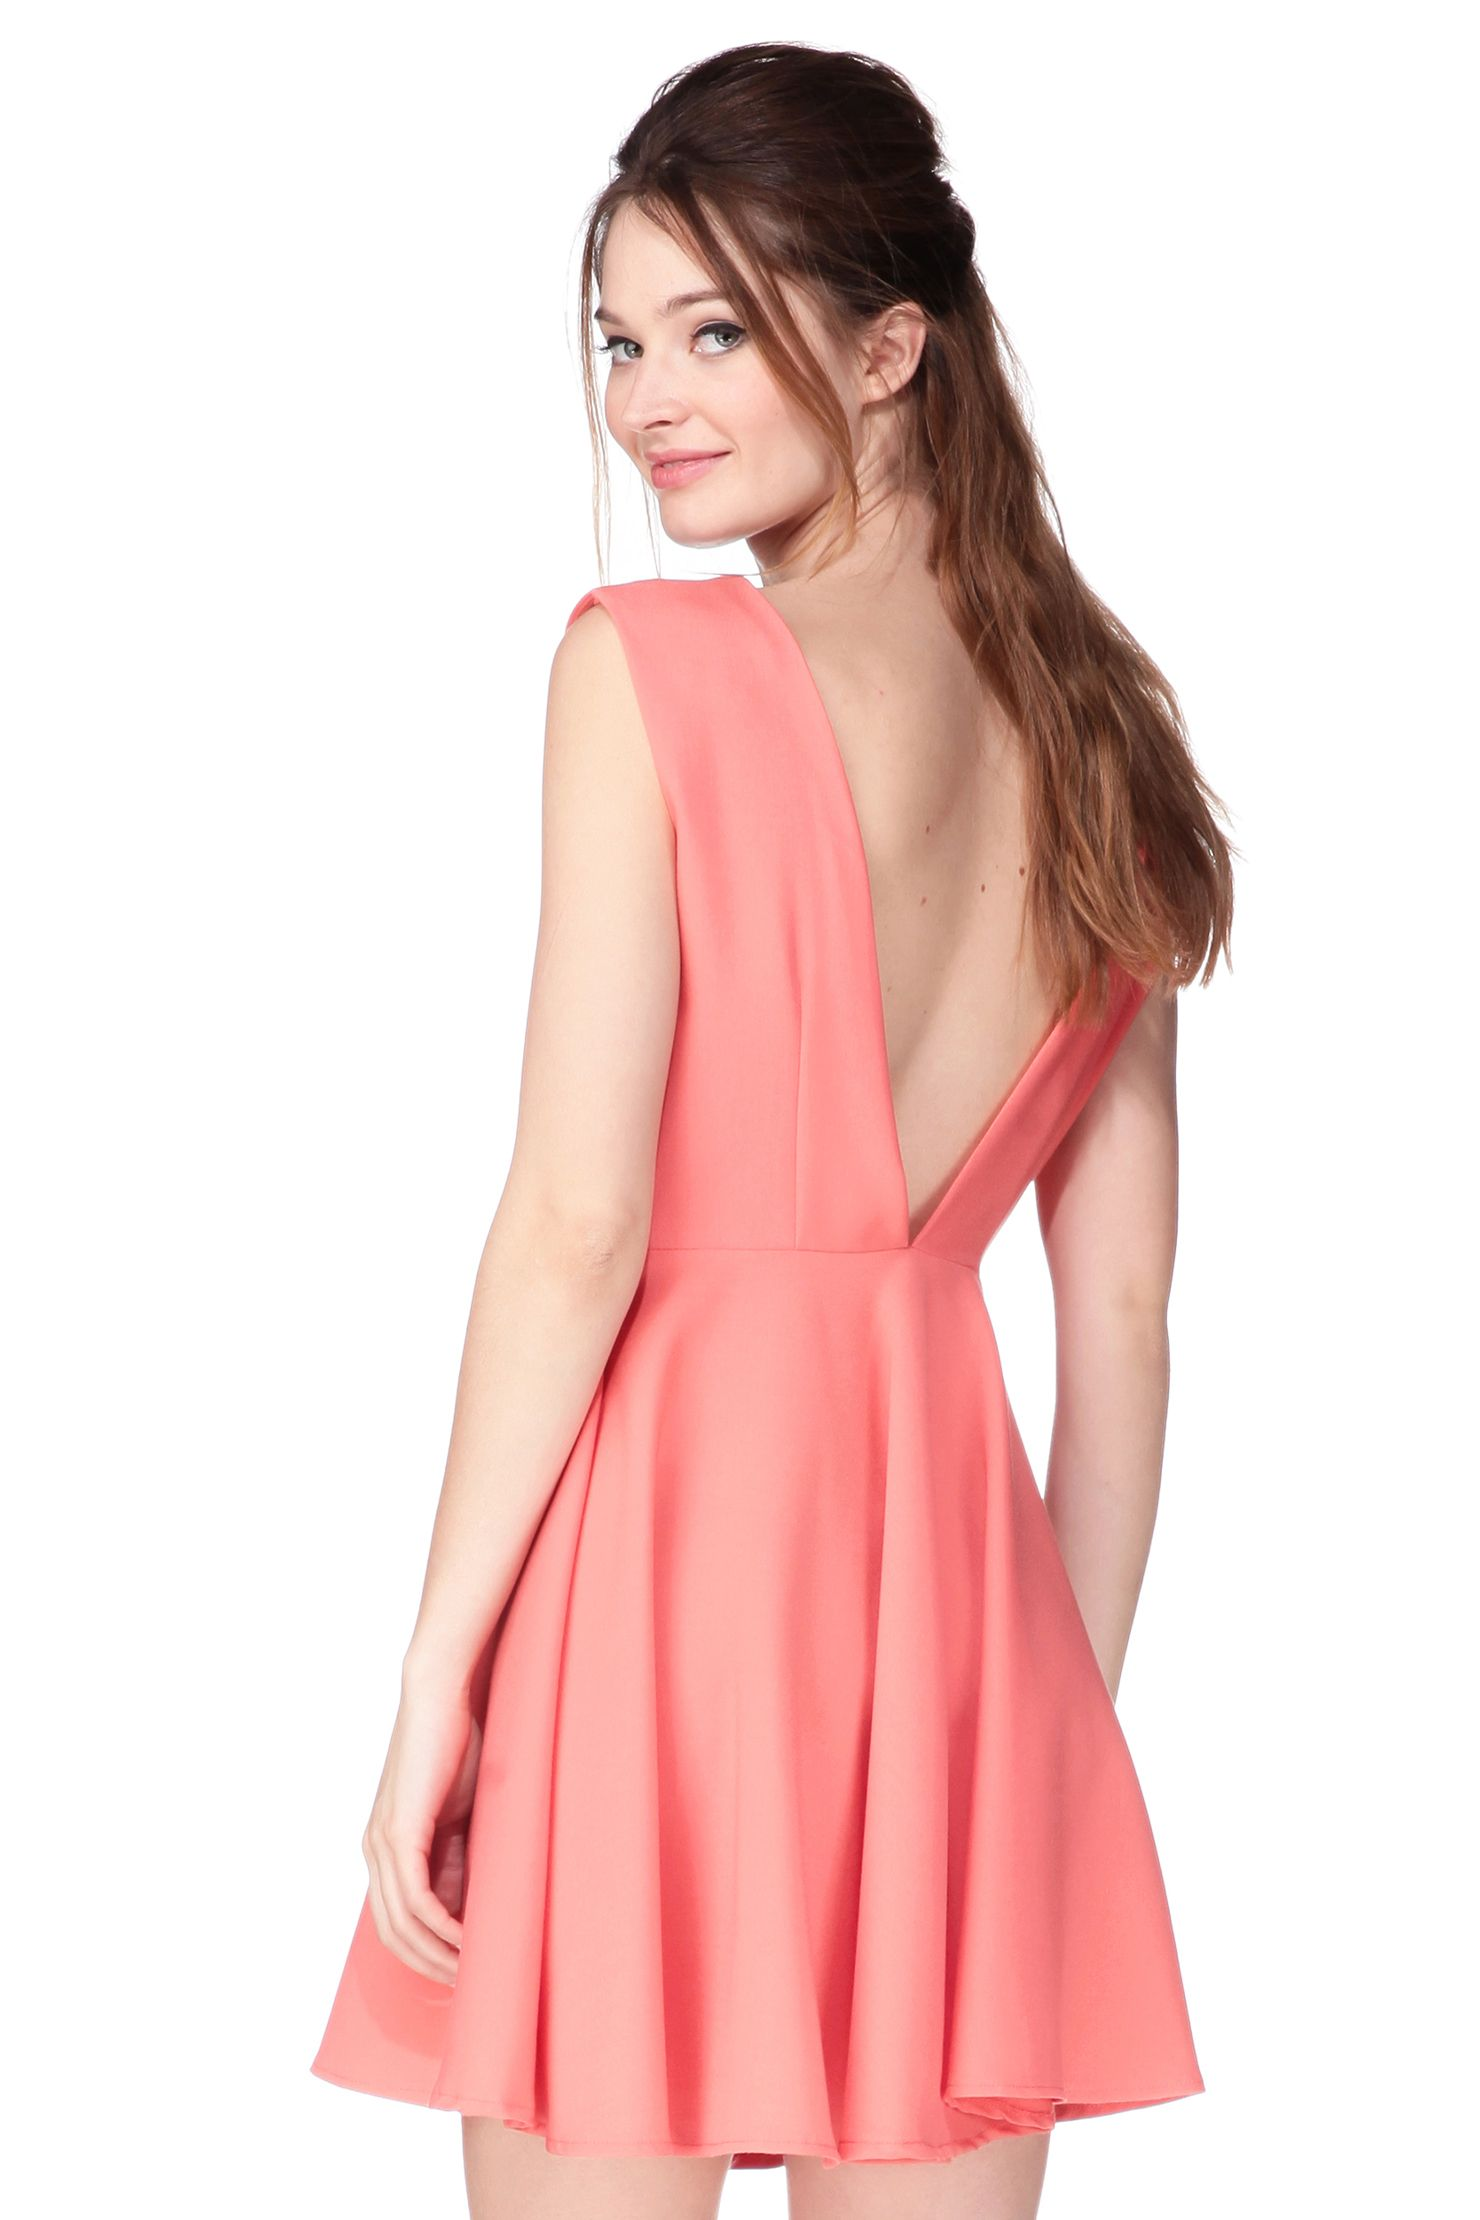 Robe Corail Dos Ouvert Paw Paw Robe Corail Robe Longue Robe Cocktail Mariage